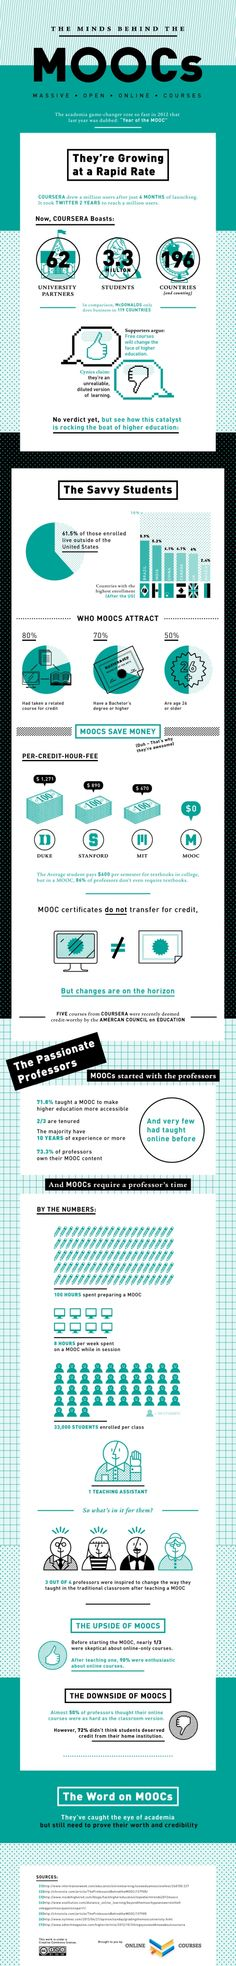 The Current State Of MOOCs - Edudemic (Source: http://www.edudemic.com/state-of-moocs)